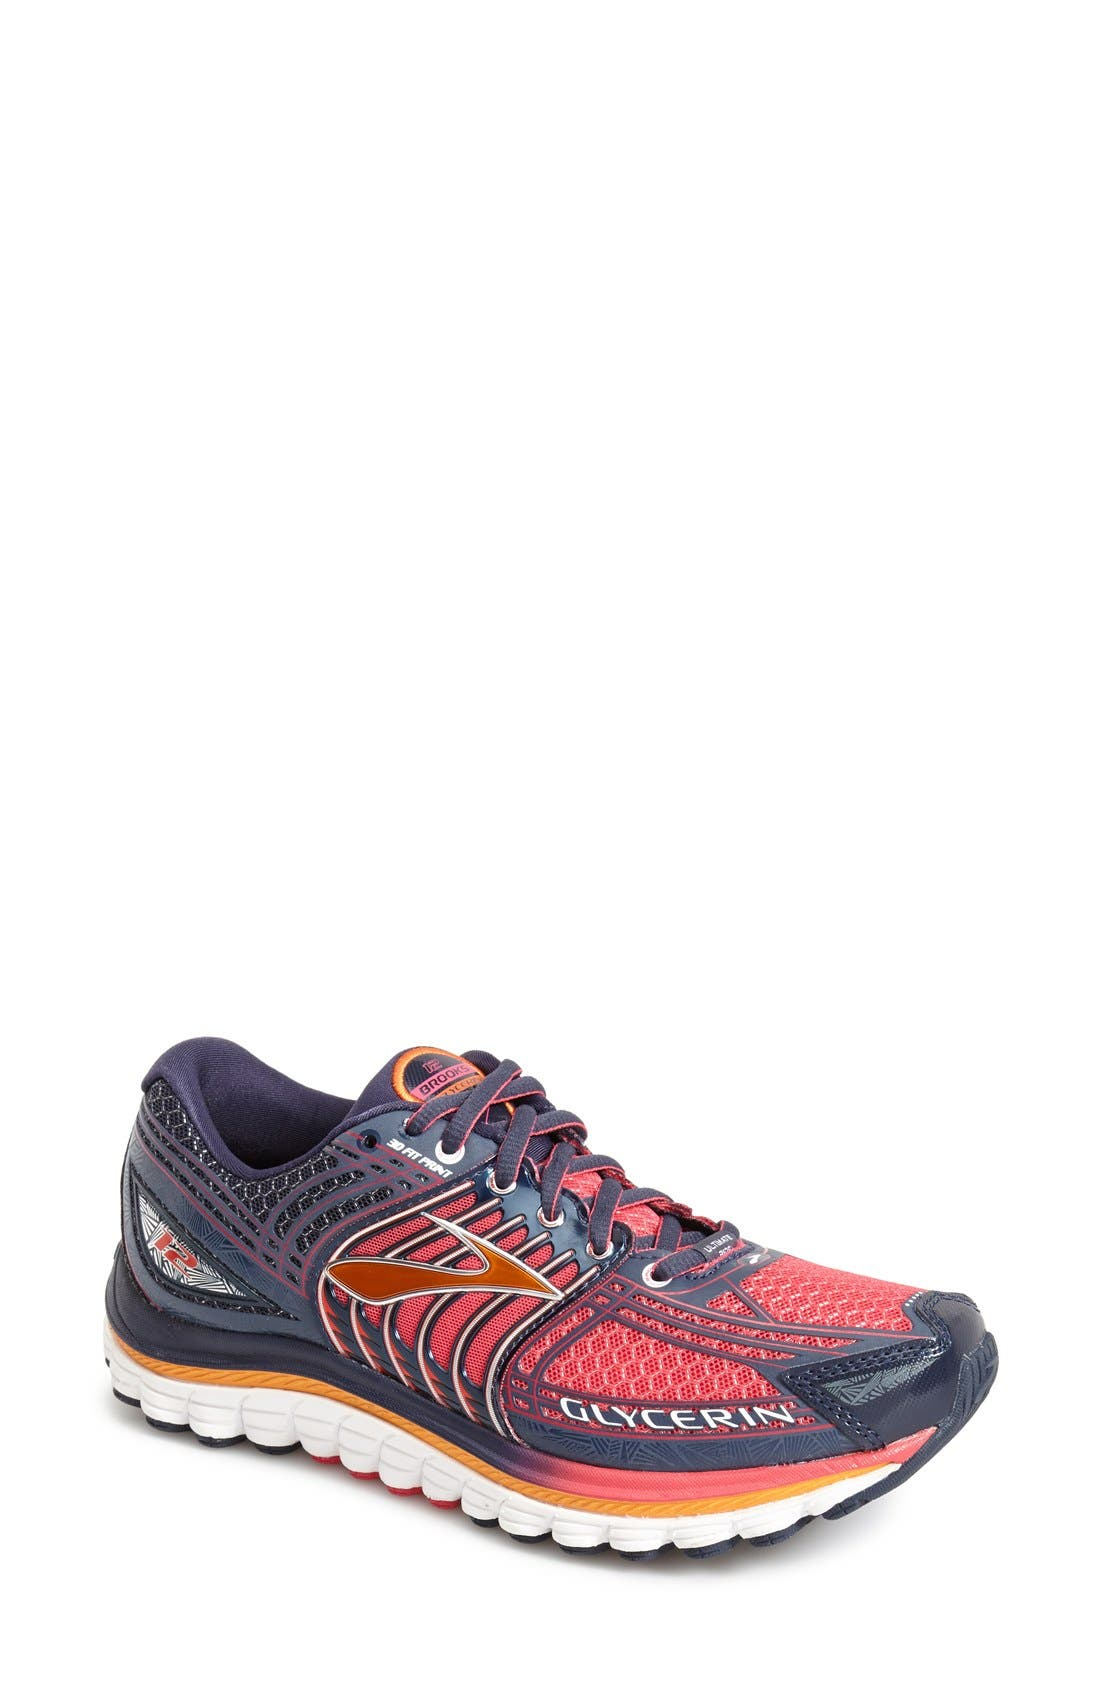 Alternate Image 1 Selected - Brooks 'Glycerin 12' Running Shoe (Women)